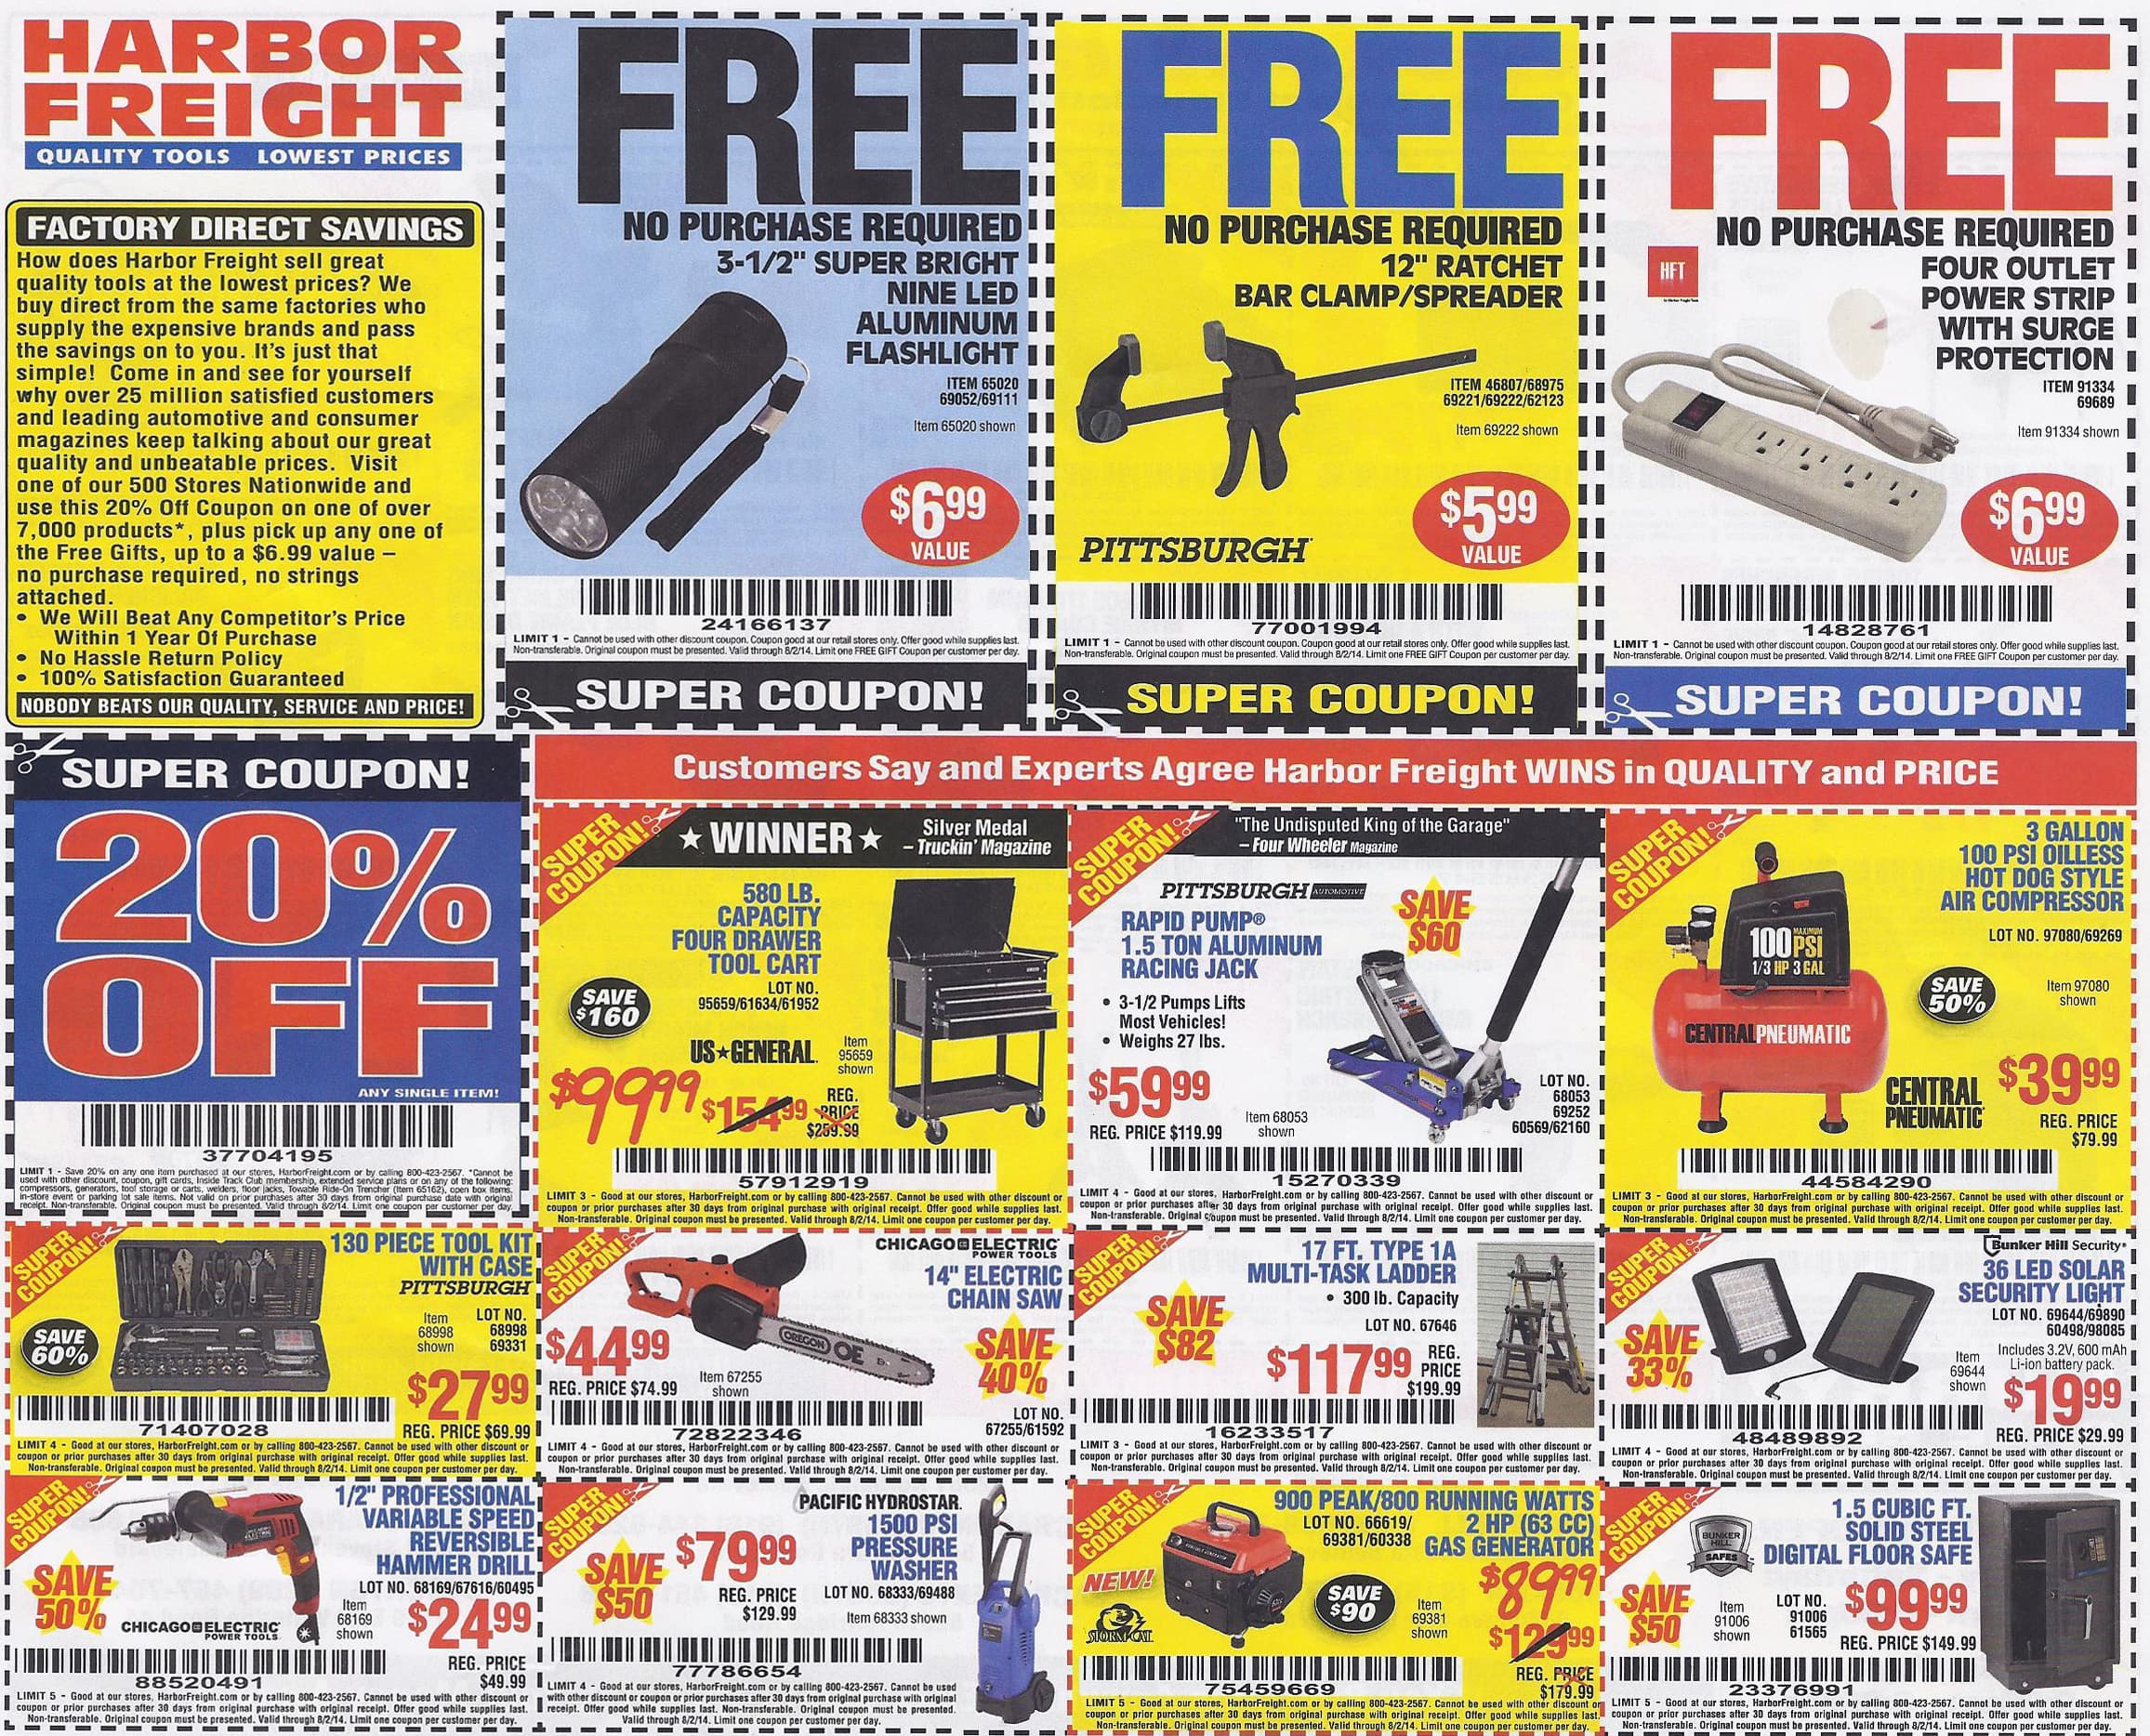 Harbor Freight Coupon Thread Page 541 Slickdeals Net